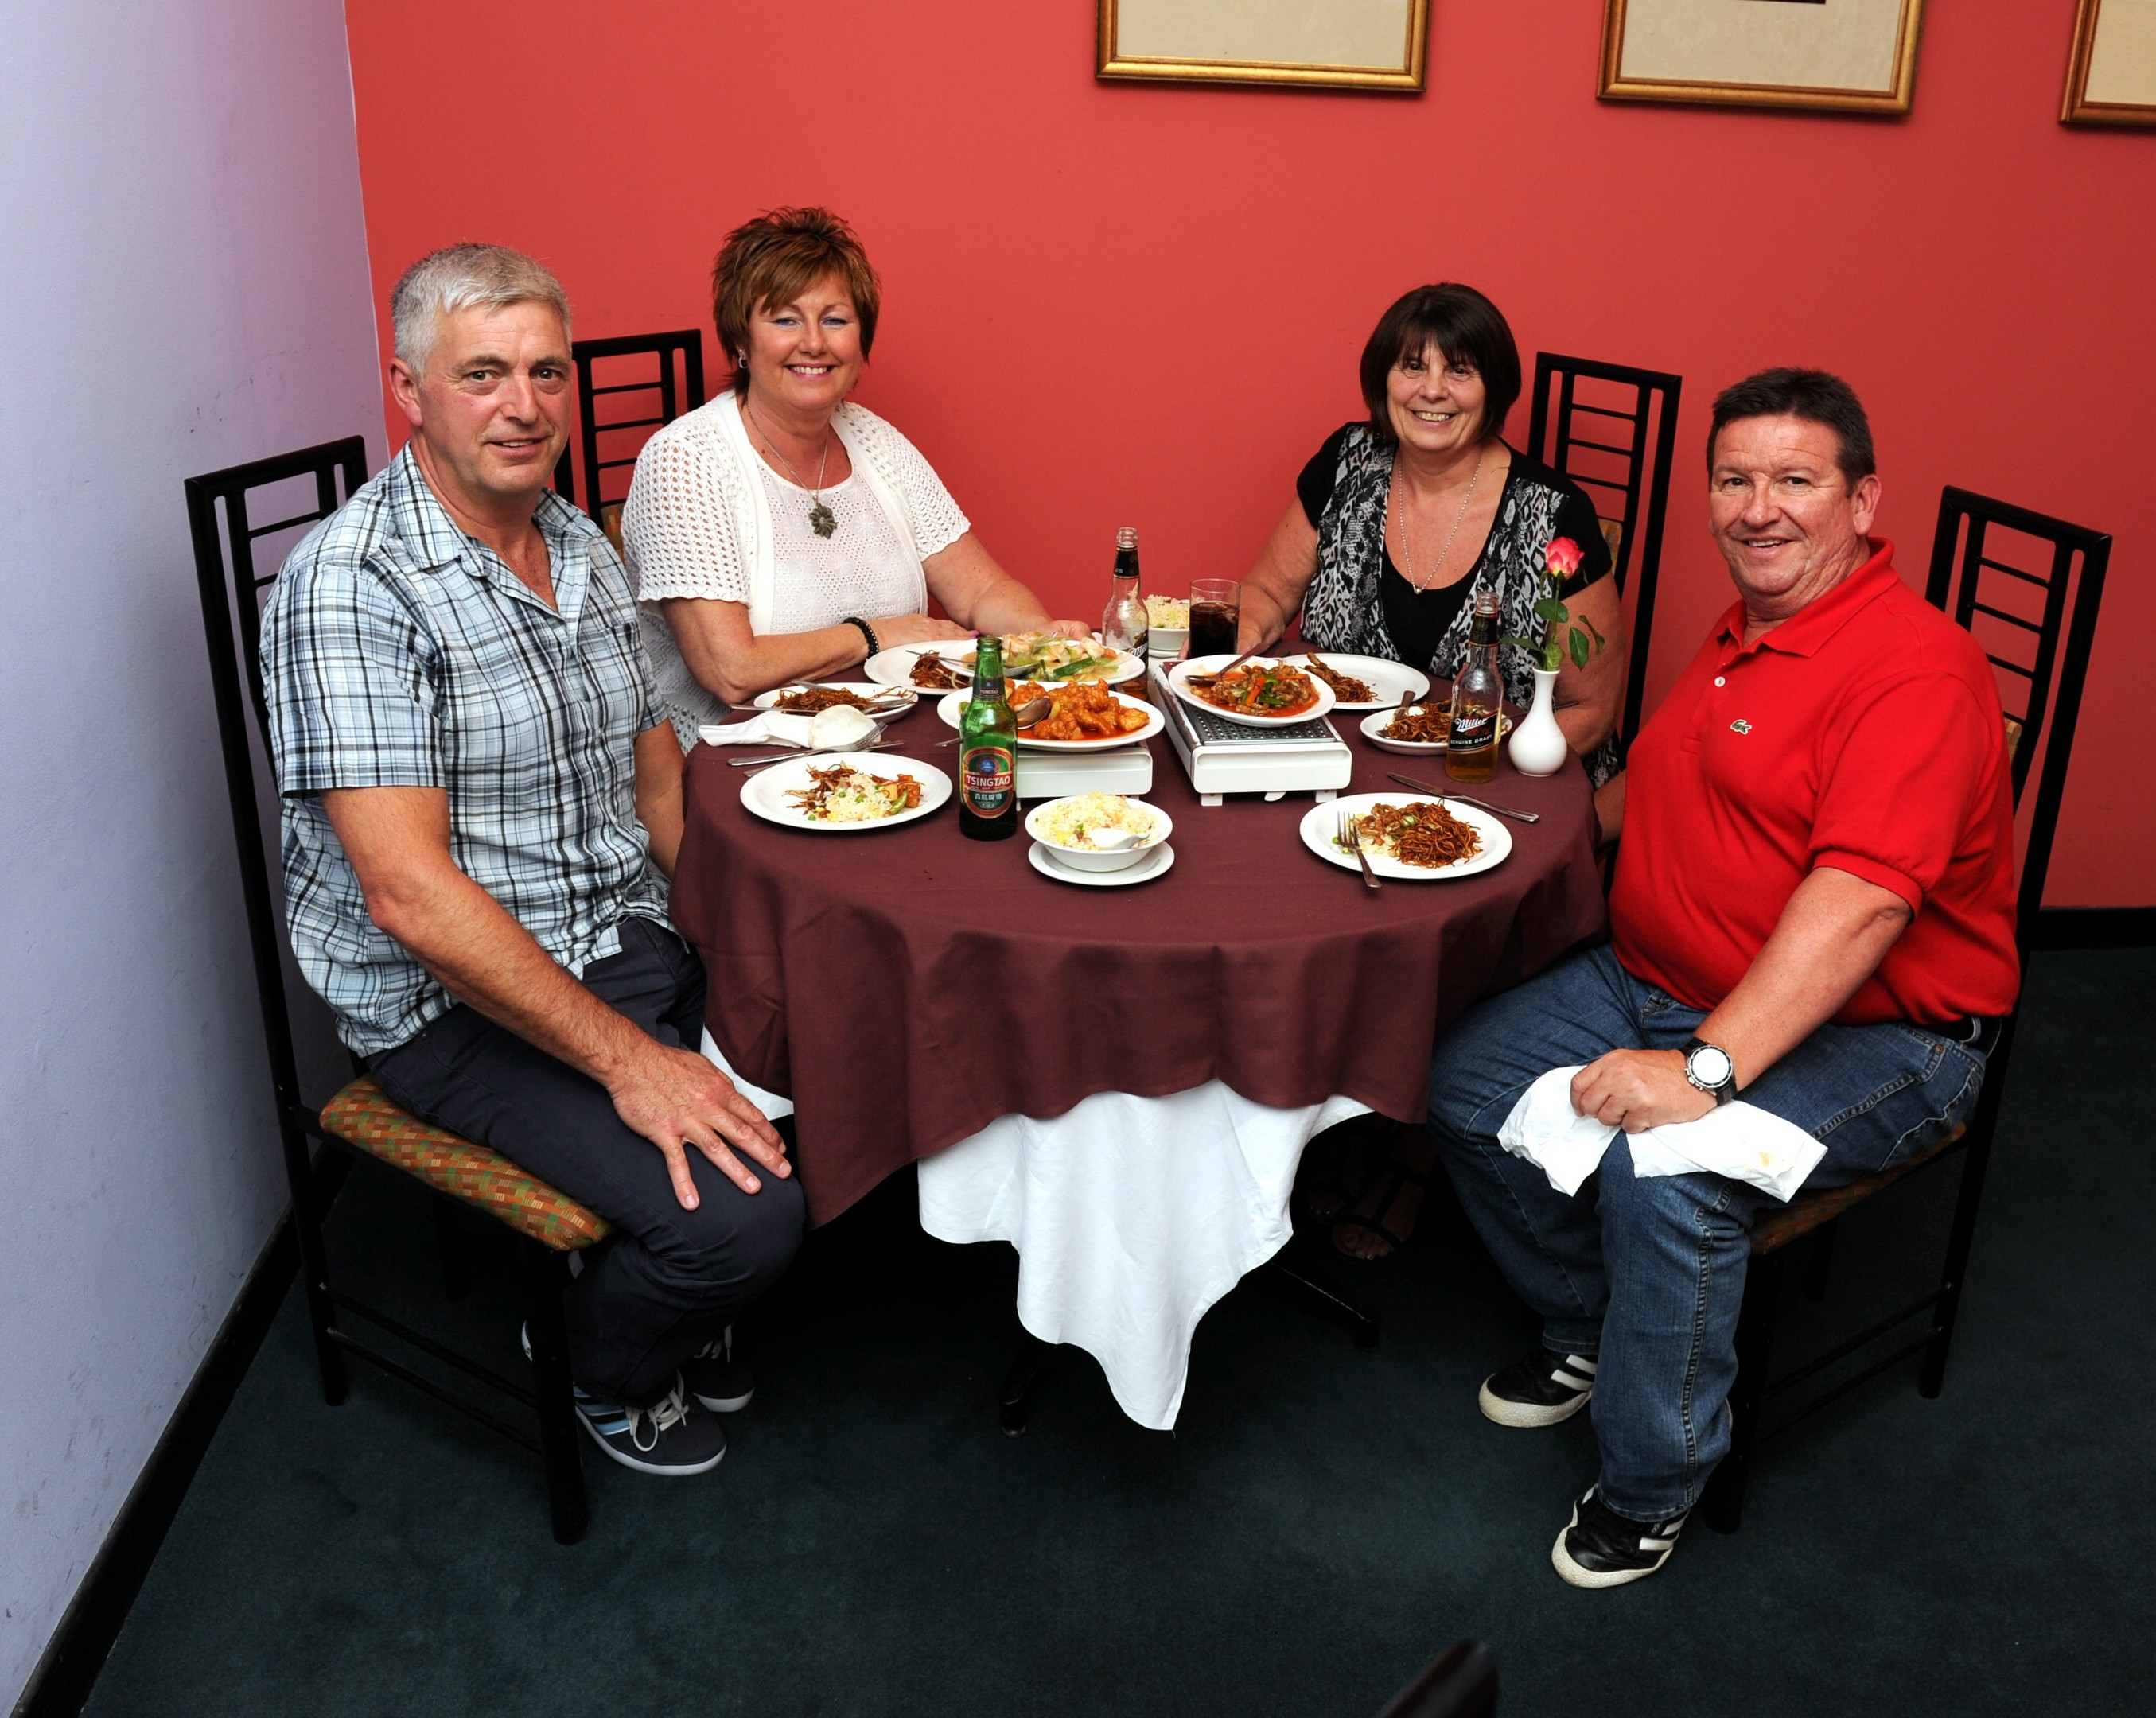 From left, William Hector, Linda Hector, Linda Fee and John Fee at the Royal China in Peterculter.